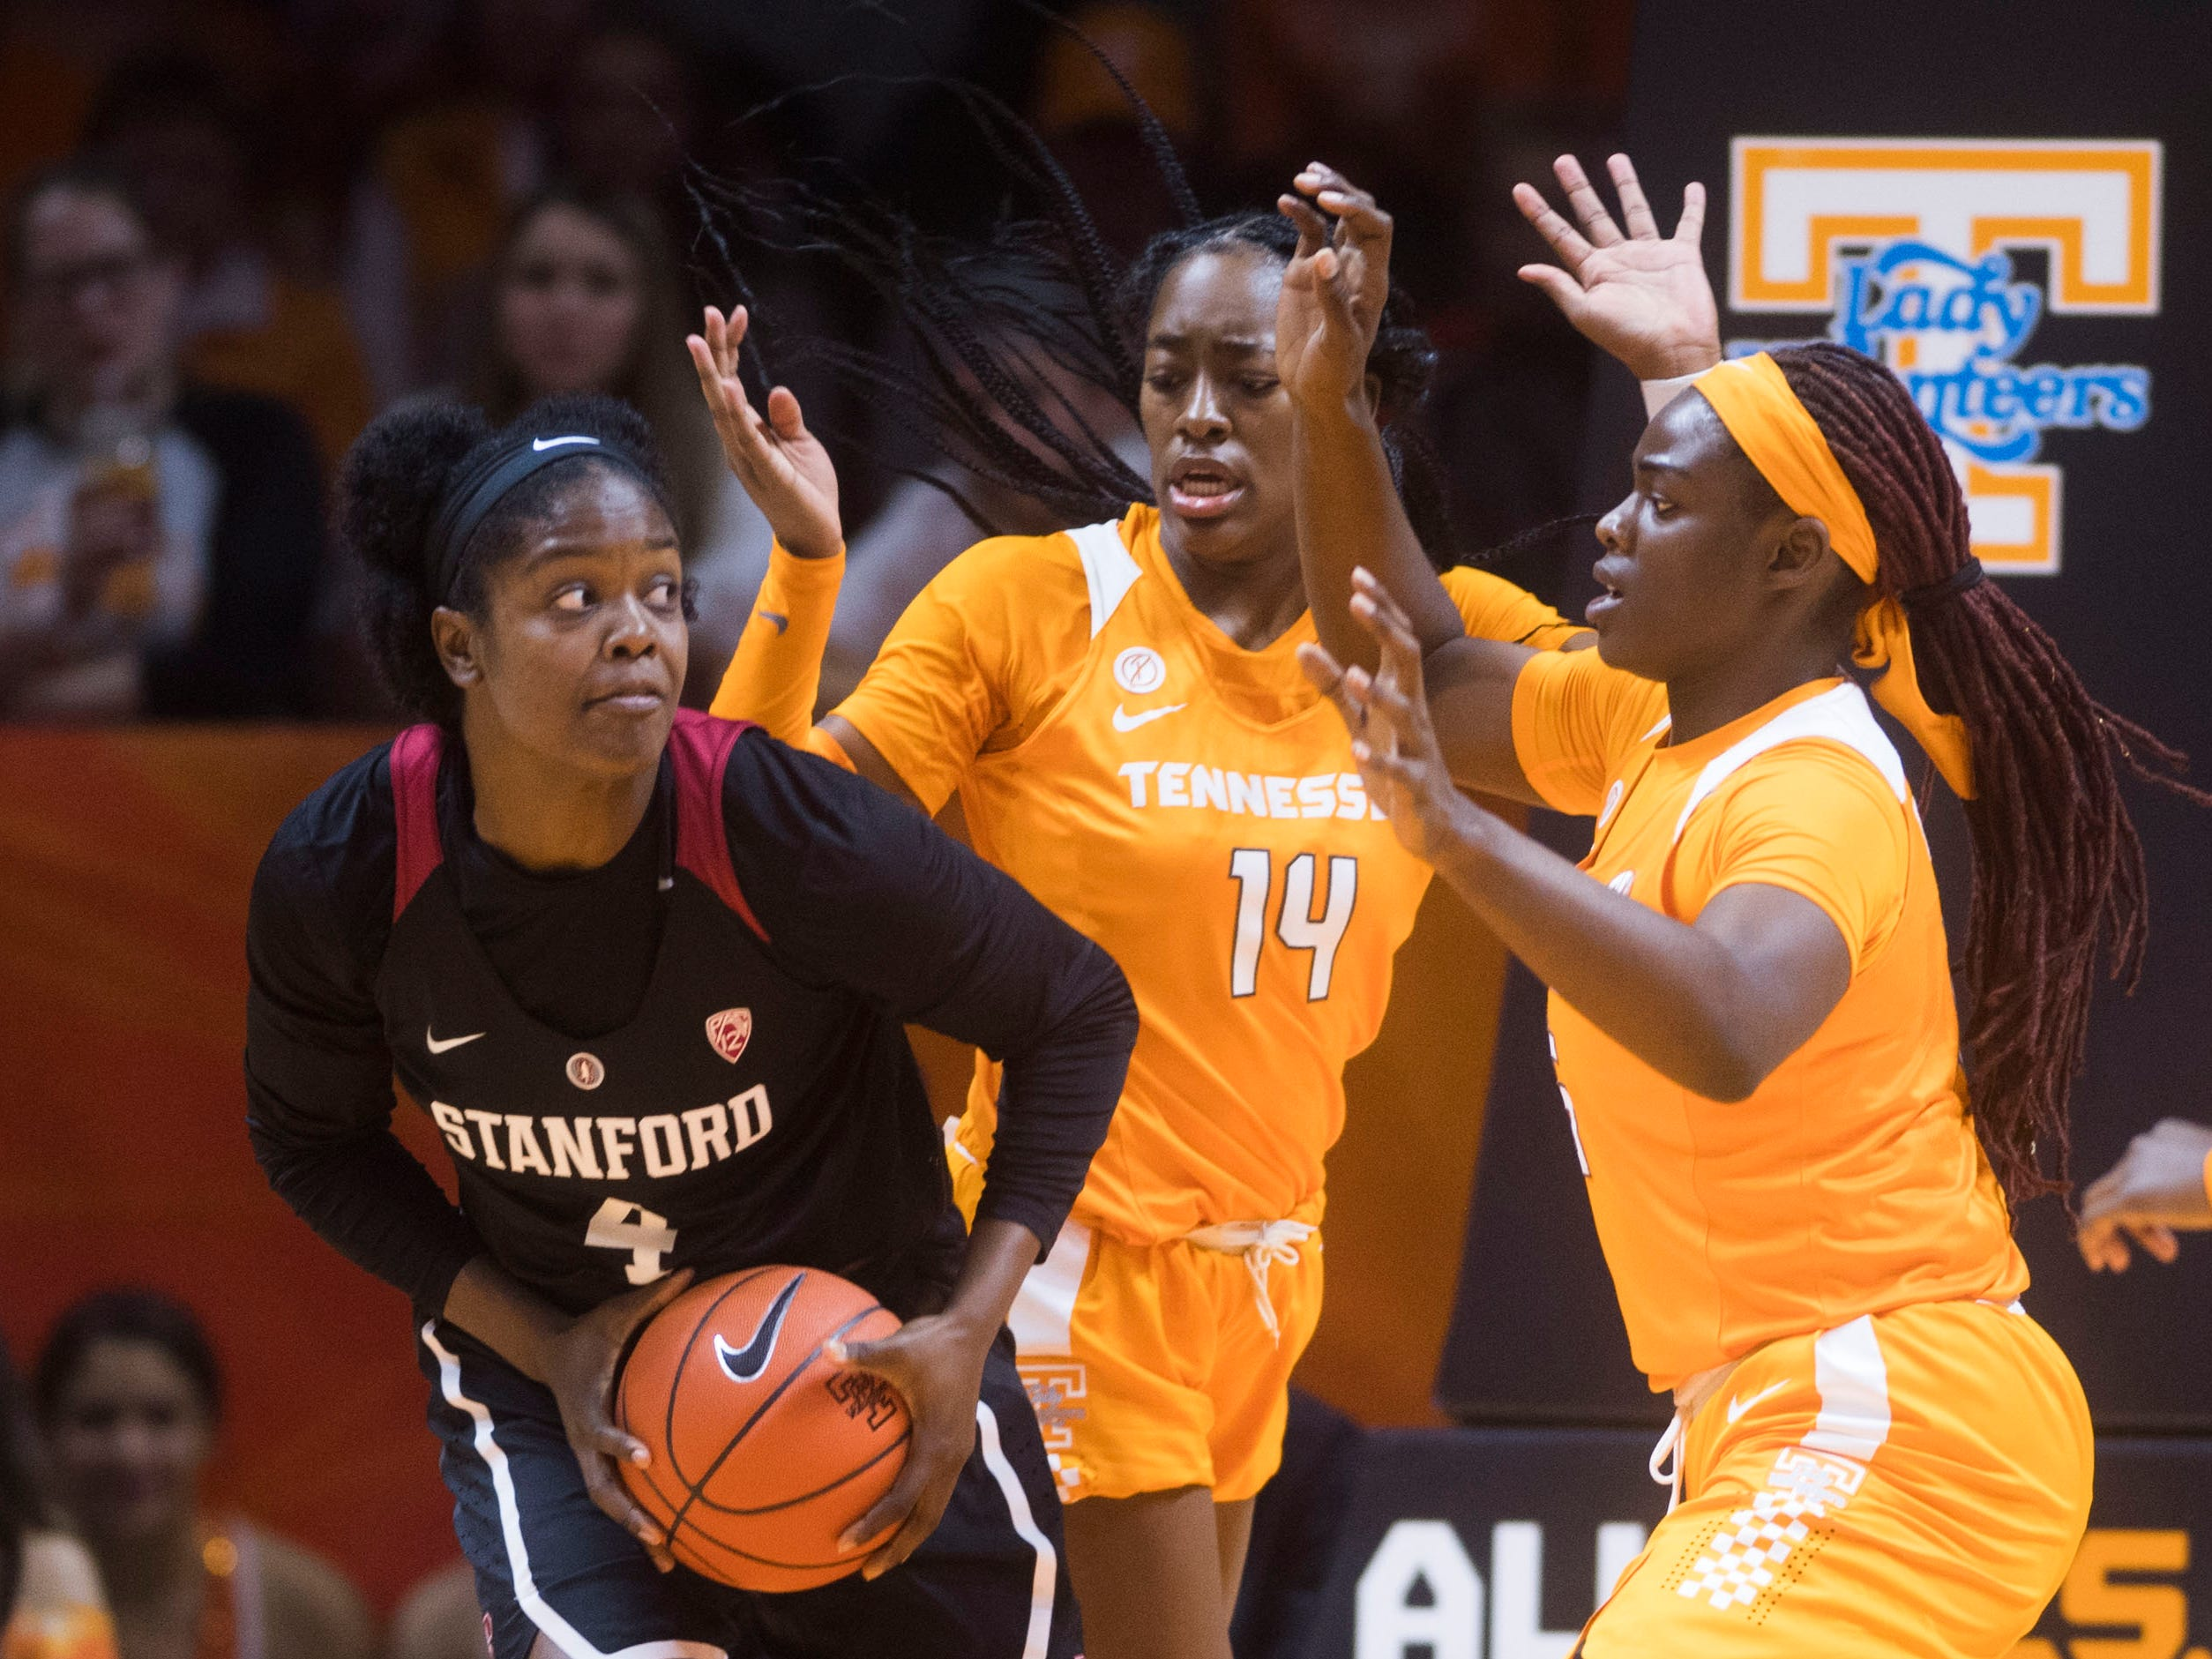 Tennessee's Zaay Green (14) and Tennessee's Cheridene Green (15) defend Standford's Nadia Fingall (4) during a women's basketball game between Tennessee and Stanford at Thompson-Boling Arena Tuesday, Dec. 18, 2018.